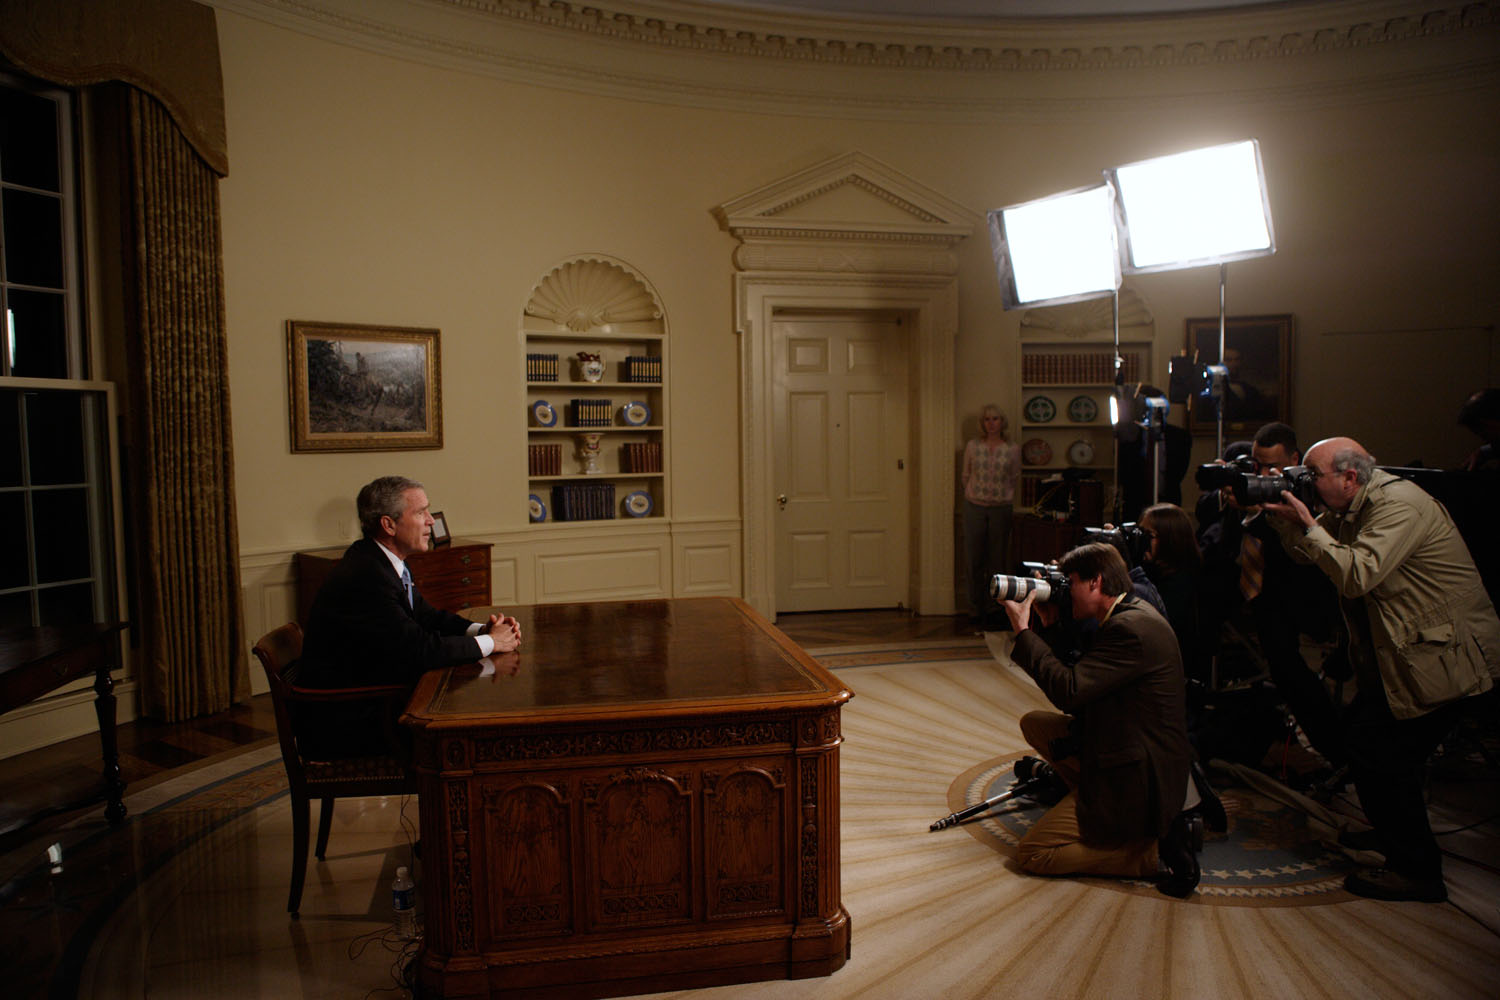 President George W. Bush is photographed shortly after delivering a speech from the Oval Office December 18, 2005.